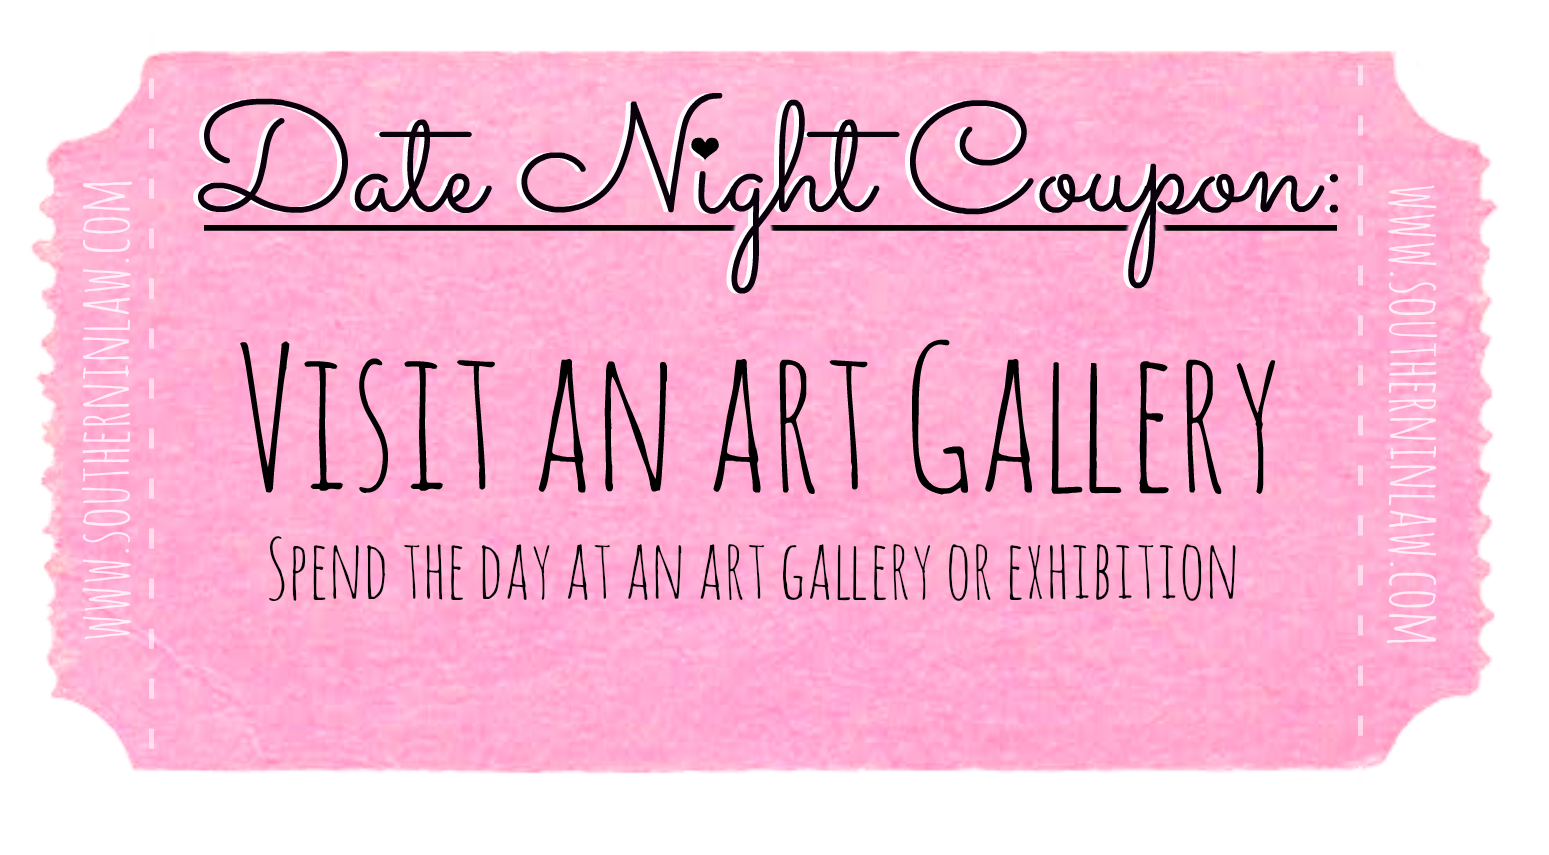 Affordable Date Ideas - Cheap Date Ideas Coupons - Visit an Art Gallery